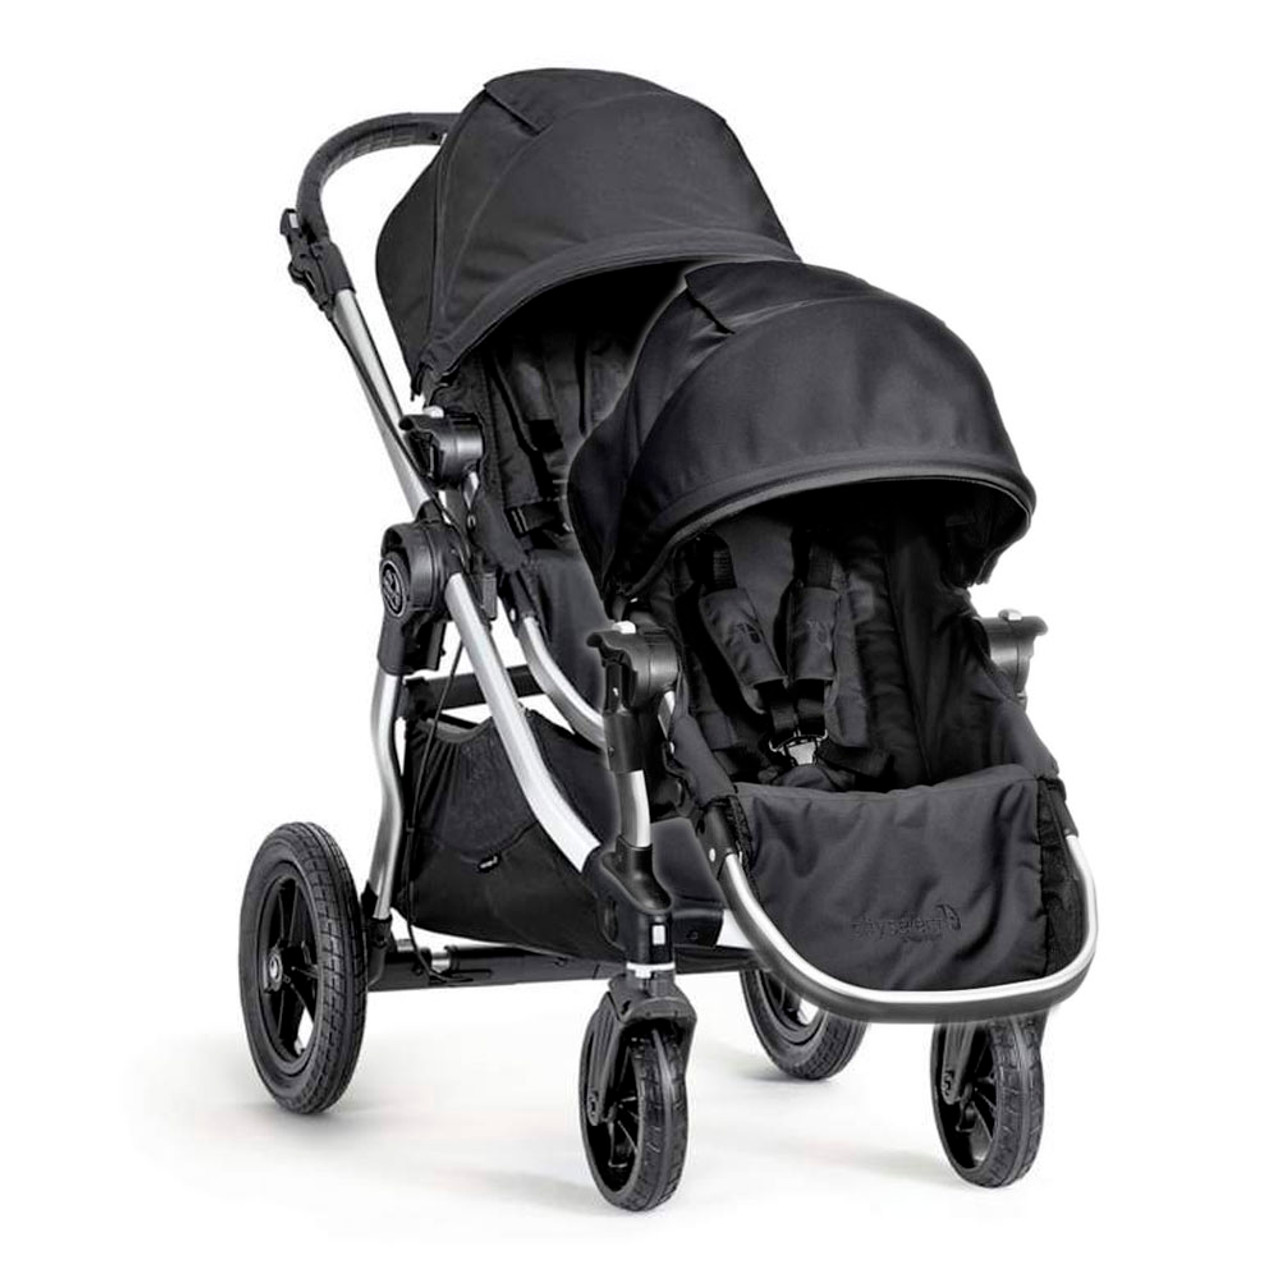 Baby Jogger City Select Silver Frame Stroller And Second Seat Combo